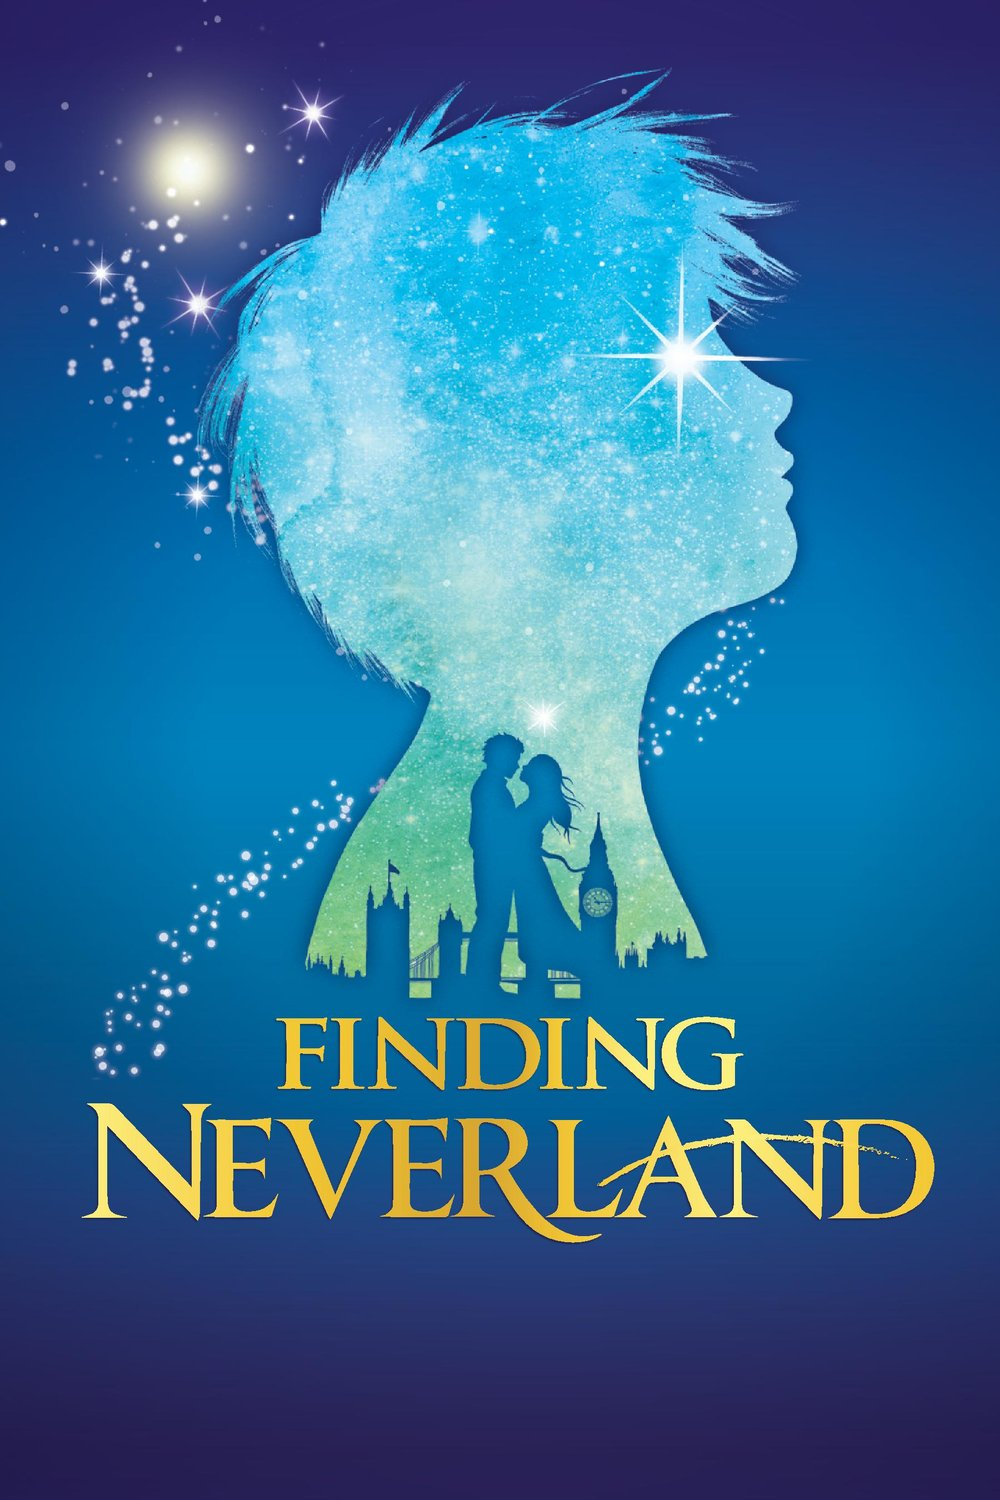 bwfindingneverland_playbillcovers-page-001.jpg